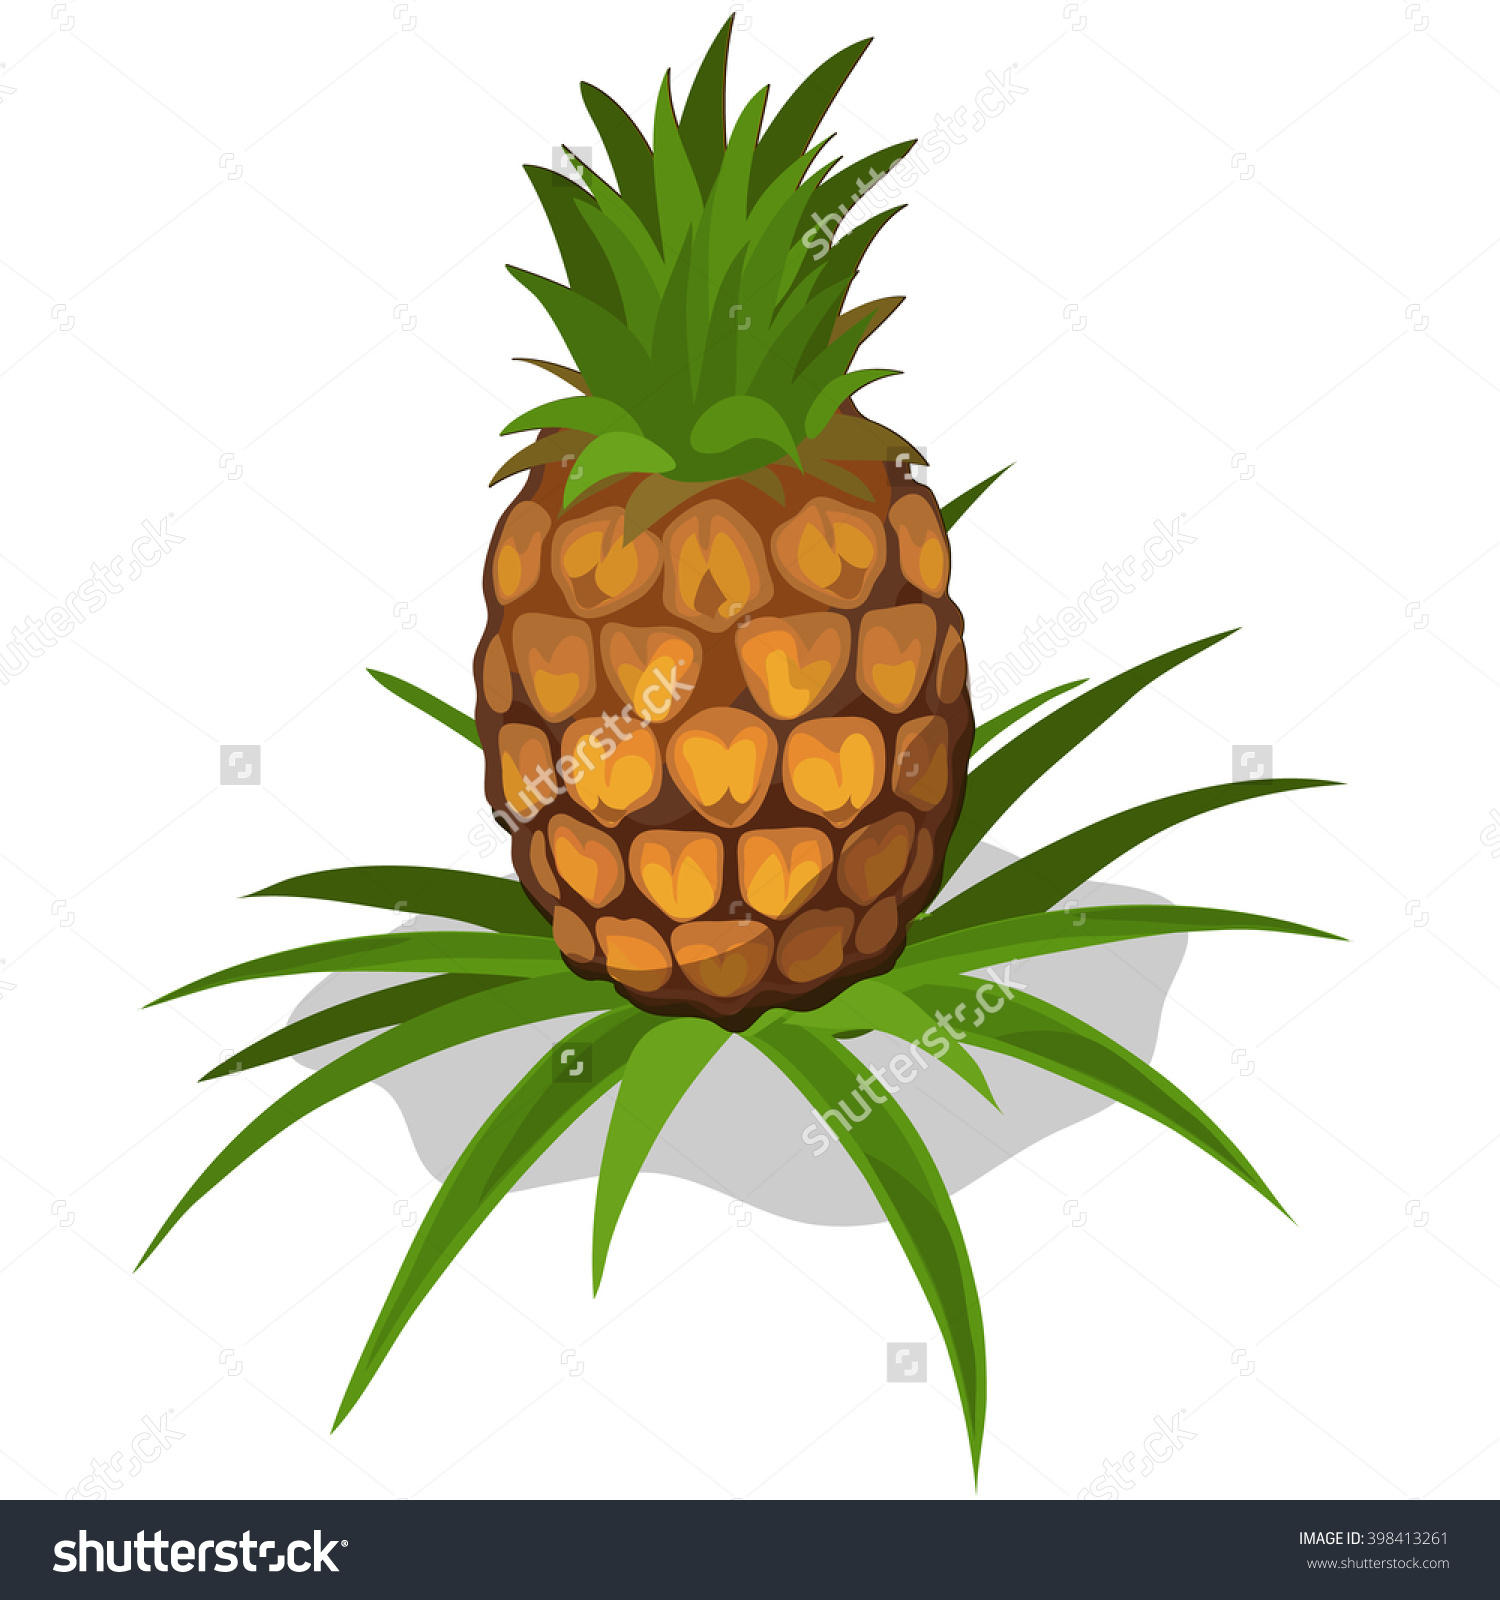 Pineapple plant clipart - Clipground